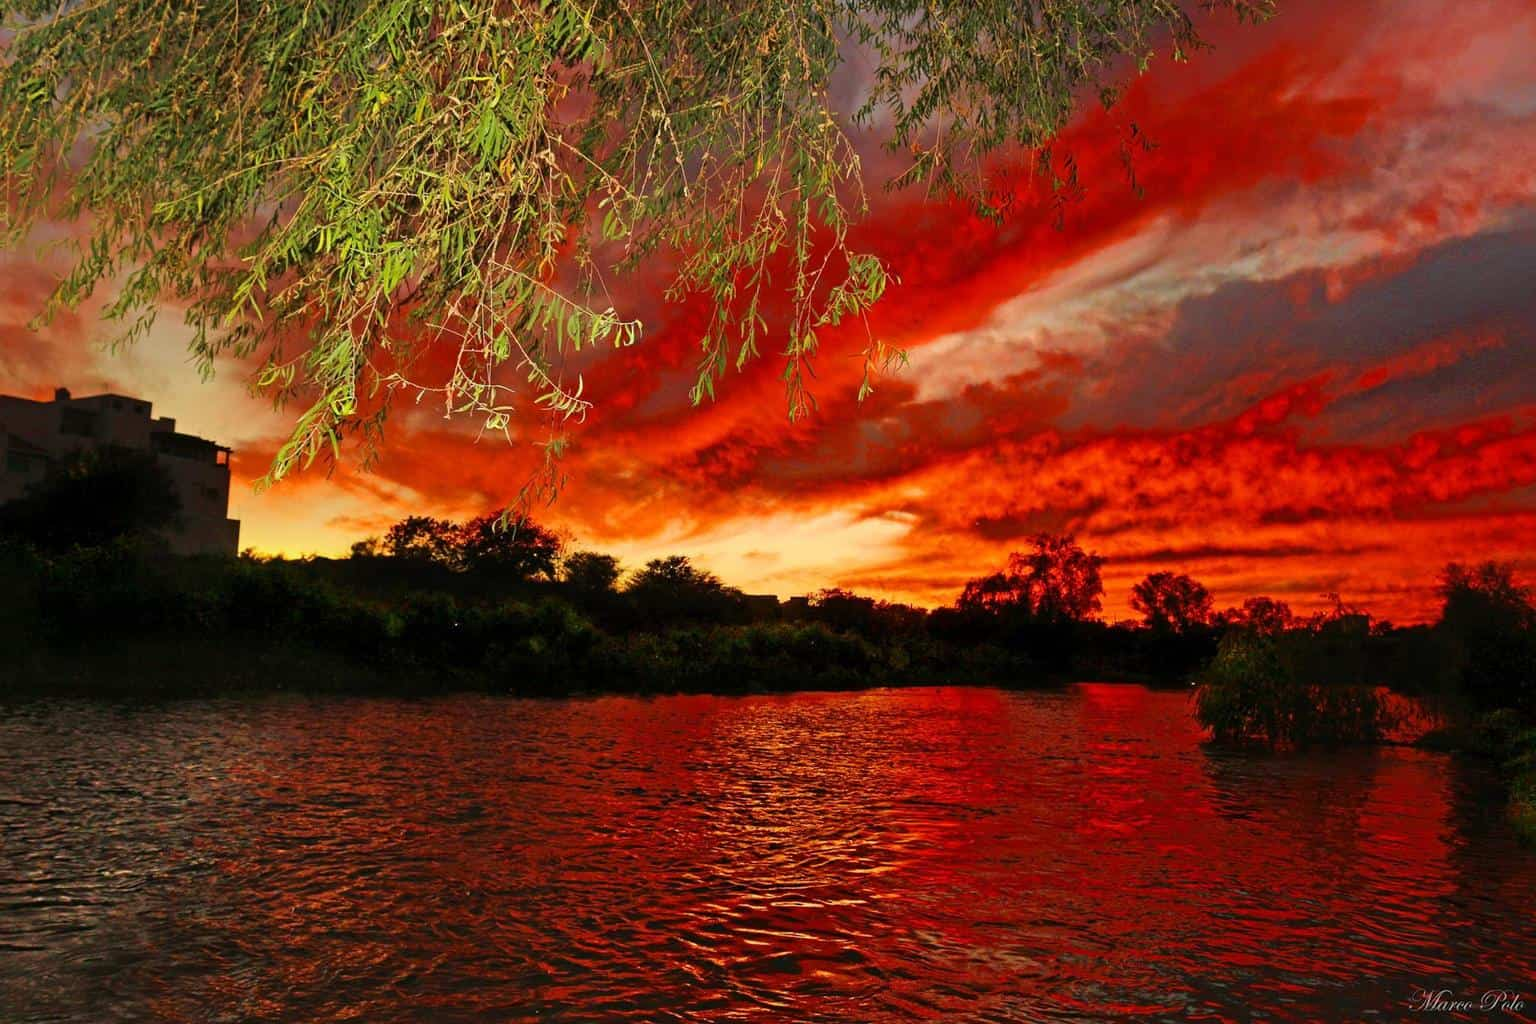 Sunset by the river. Sinaloa, Mexico.